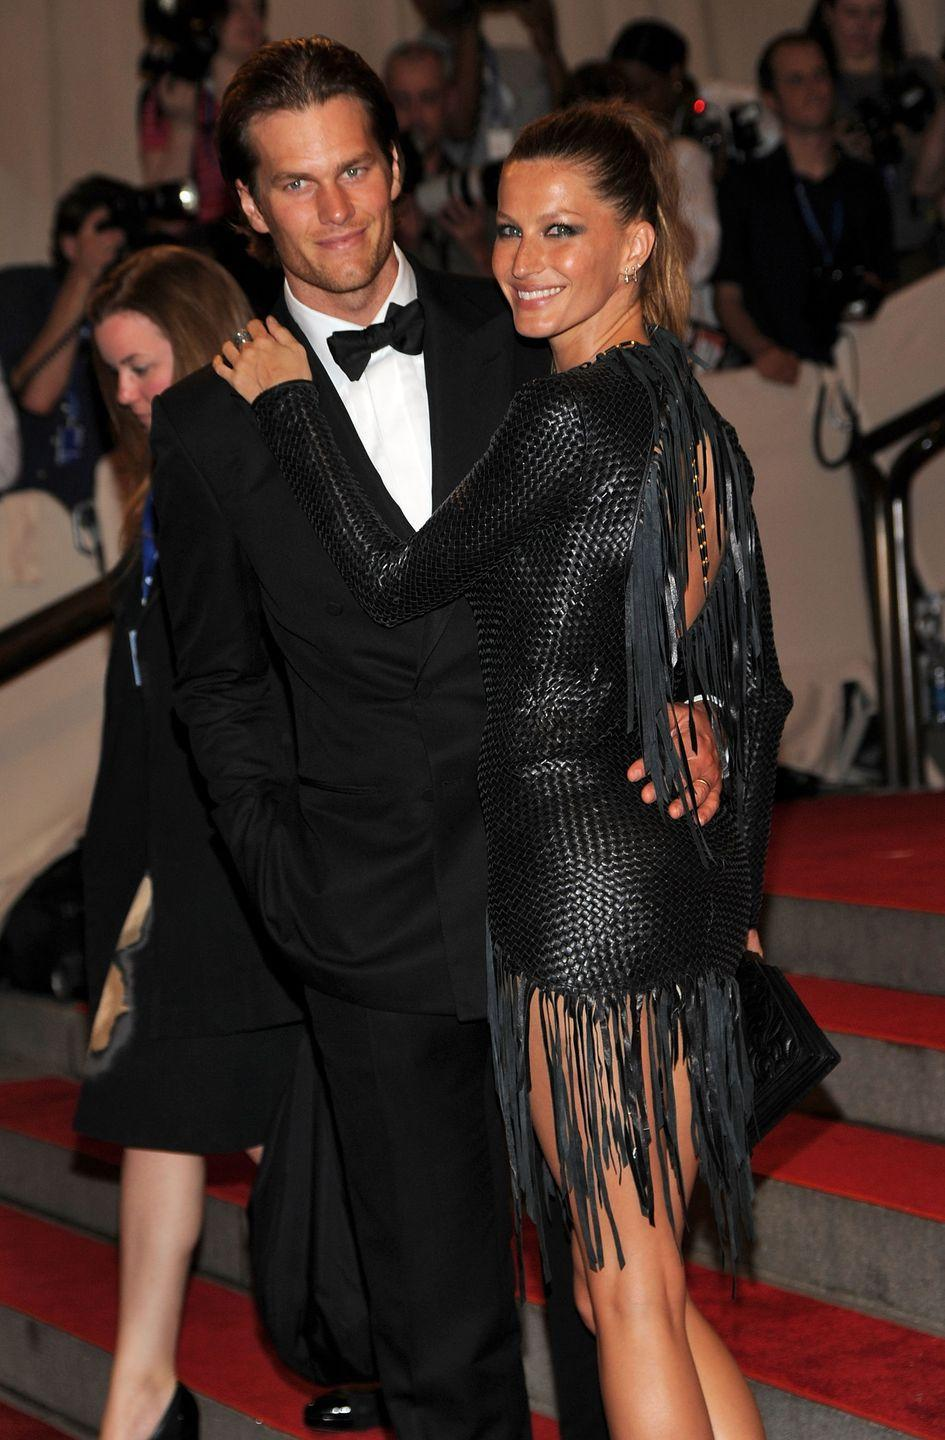 """<p>Tom Brady and Gisele Bündchen got married in a church ceremony with only their parents in attendance, which they followed with a home reception. """"We went back to the house and I barbecued aged New York strips. We had champagne, a cake, some ice cream. It was a great night. I think you always have this idea that weddings need to be 200 people and you invite everybody, and I'm all for it if people want to do that, but I think there was really something special about just having our parents there,"""" Tom told <a href=""""https://www.gq.com/story/tom-brady-nfl-patriots-gisele"""" rel=""""nofollow noopener"""" target=""""_blank"""" data-ylk=""""slk:GQ"""" class=""""link rapid-noclick-resp""""><em>GQ</em></a>. </p>"""